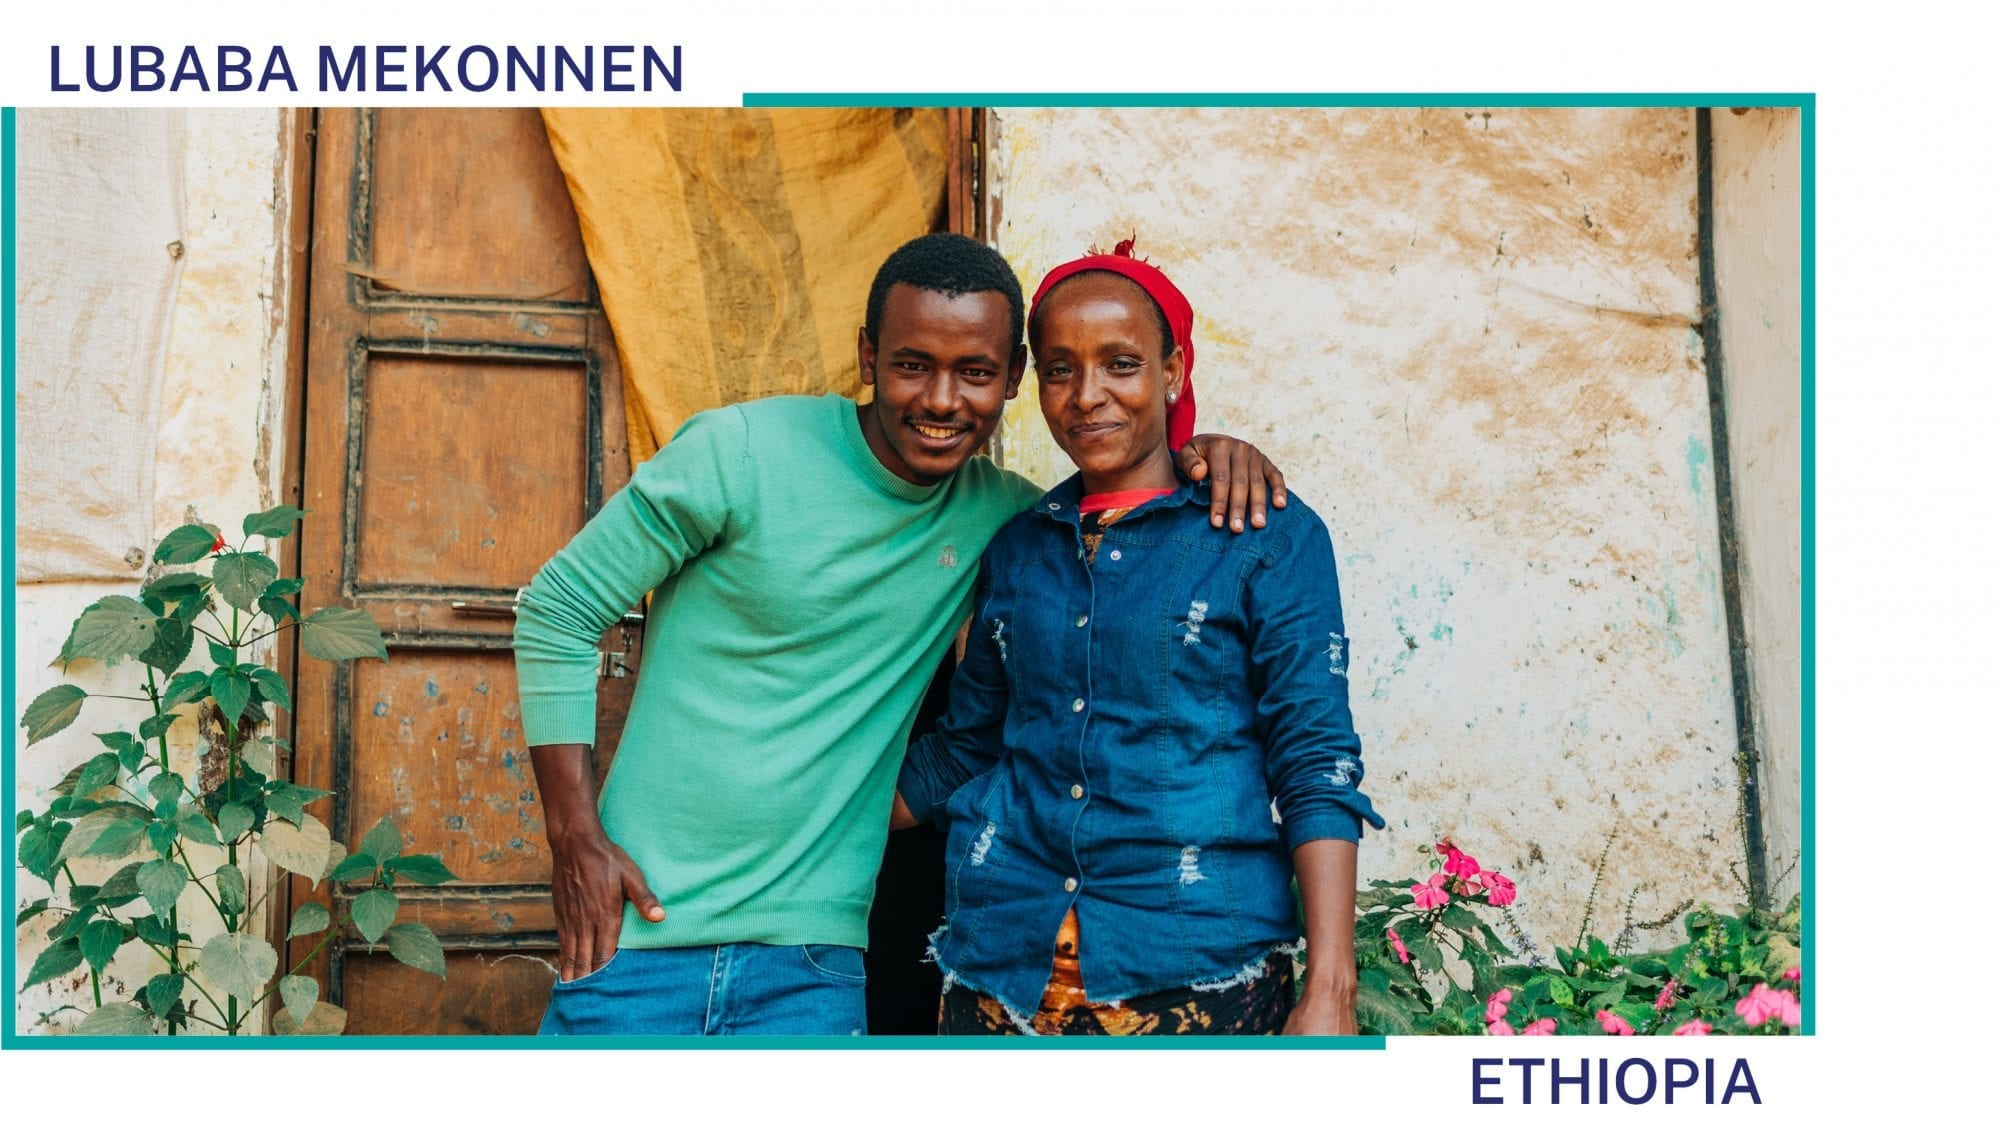 Lubaba Mekonnen stands with her son in front of their house in Ethiopia